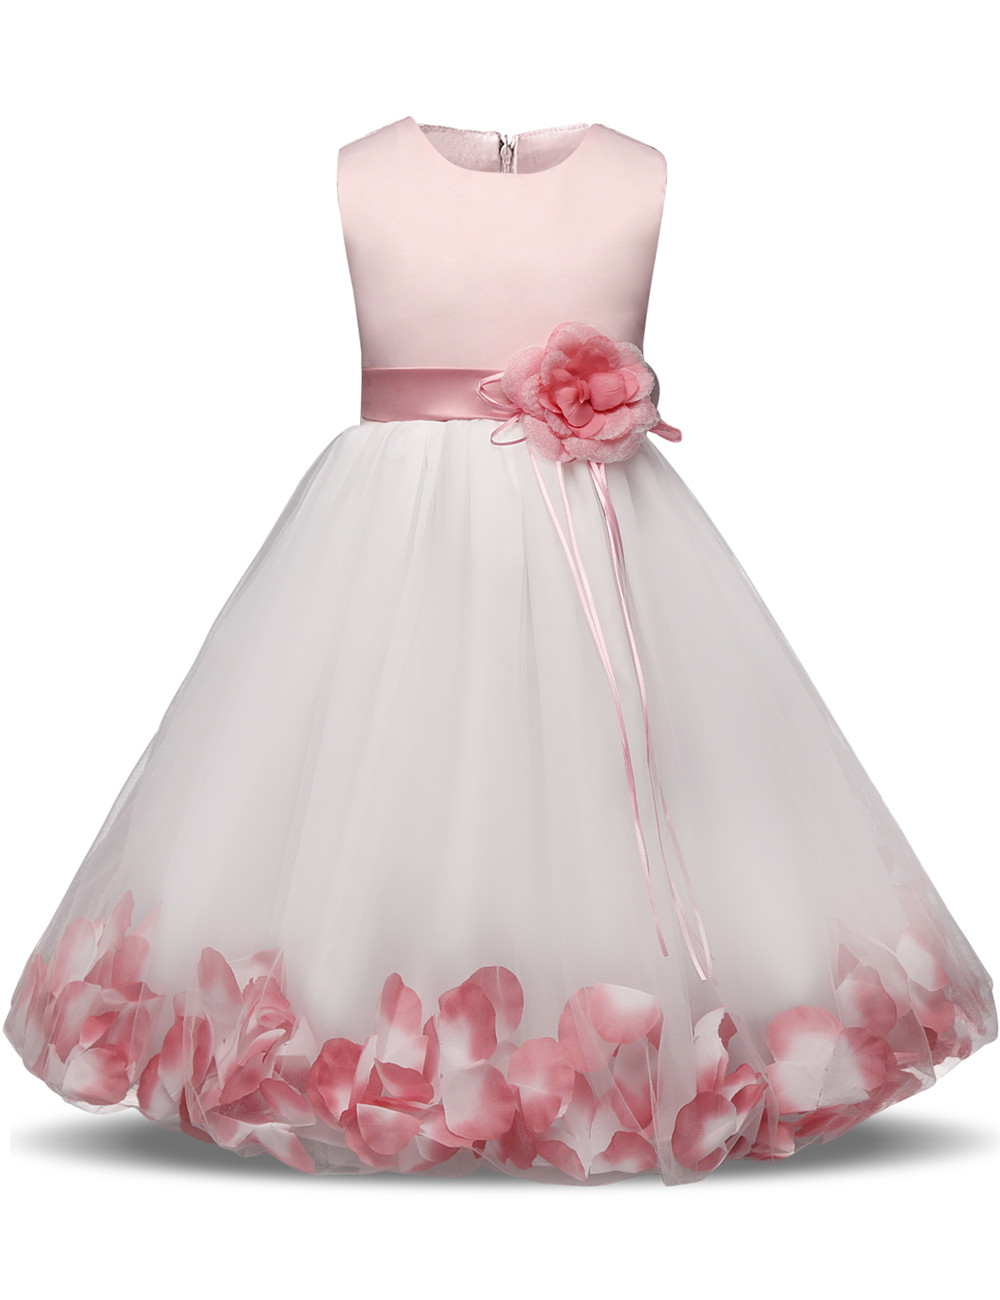 dc42688846e3f Flower Girl Baby Wedding Dress Children's Clothing Girl Party Costume  Evening Formal Dress Kids Clothes Fancy Teenage Girl Gown